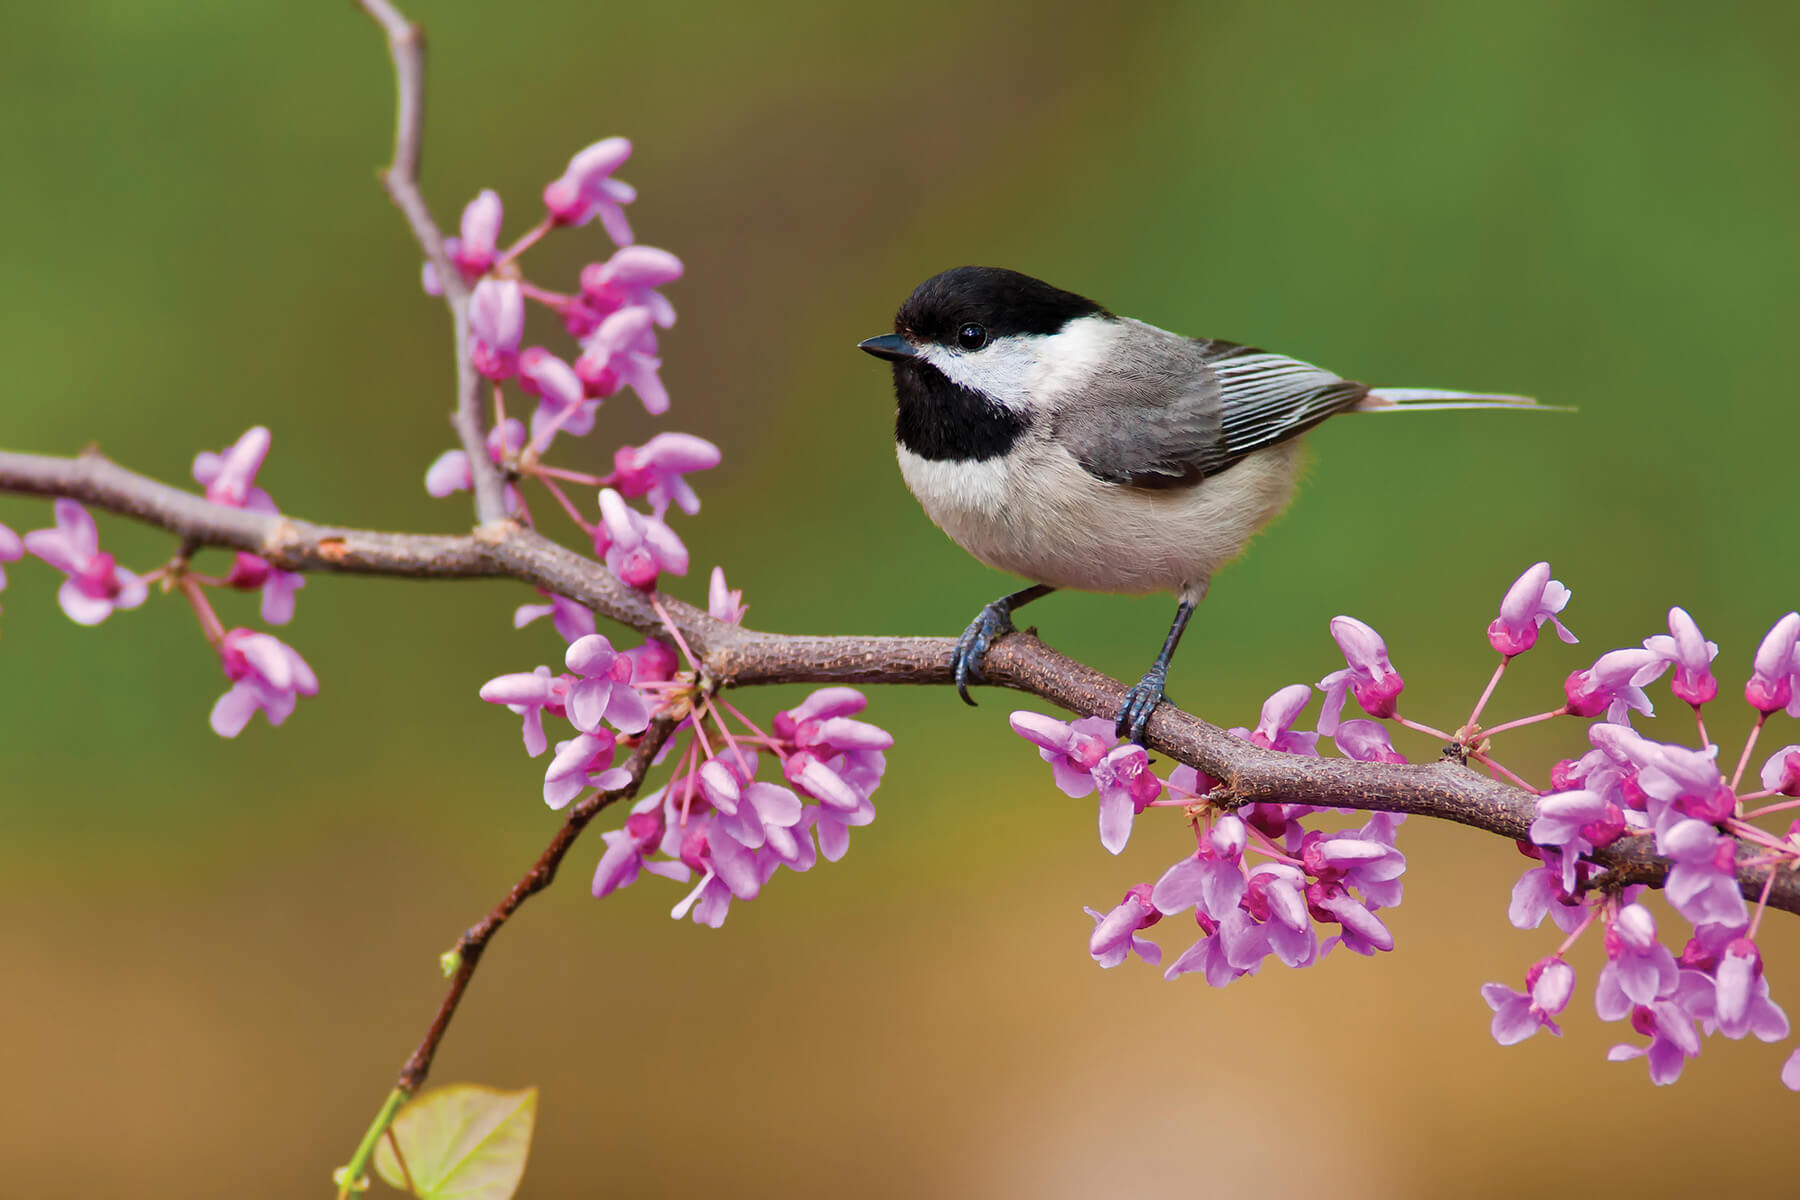 Chickadee theme